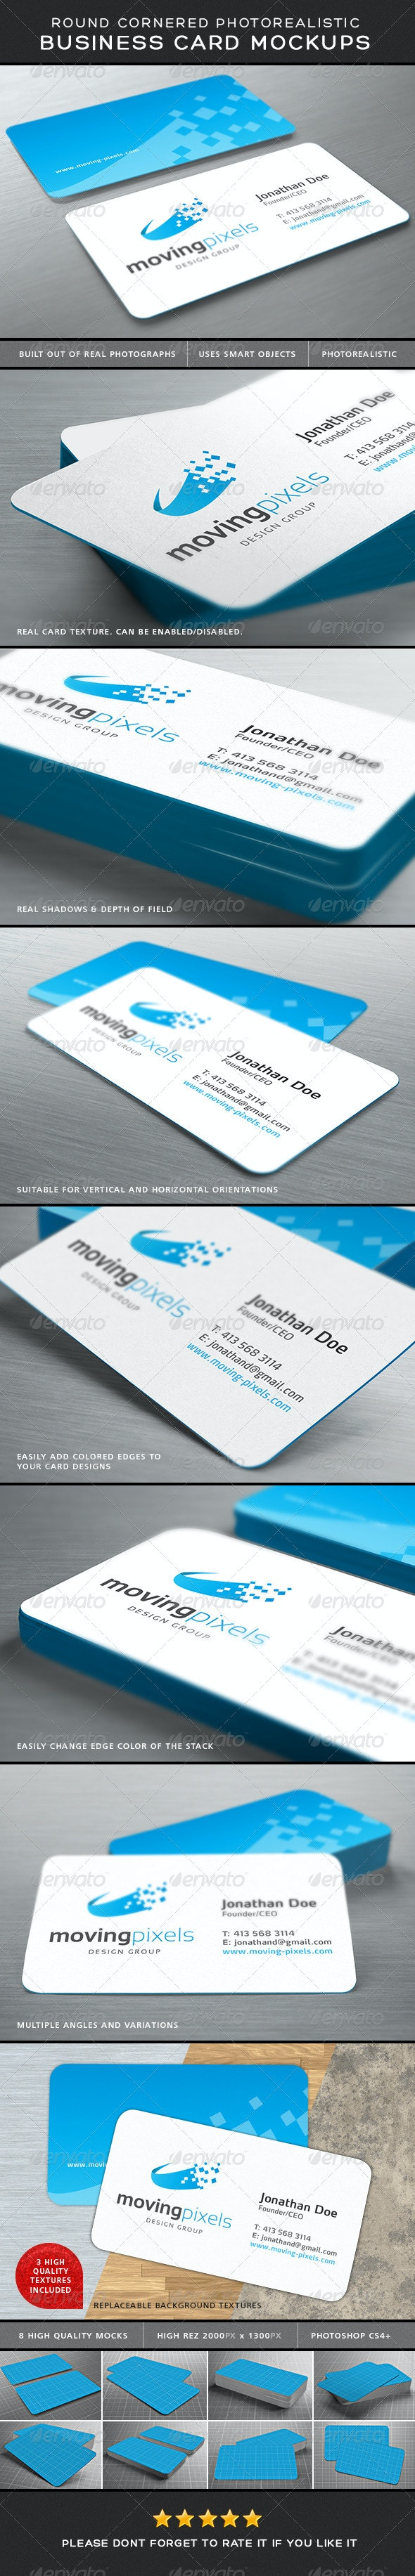 Photorealistic Business Card Mockup Round Corners - Business Cards Print